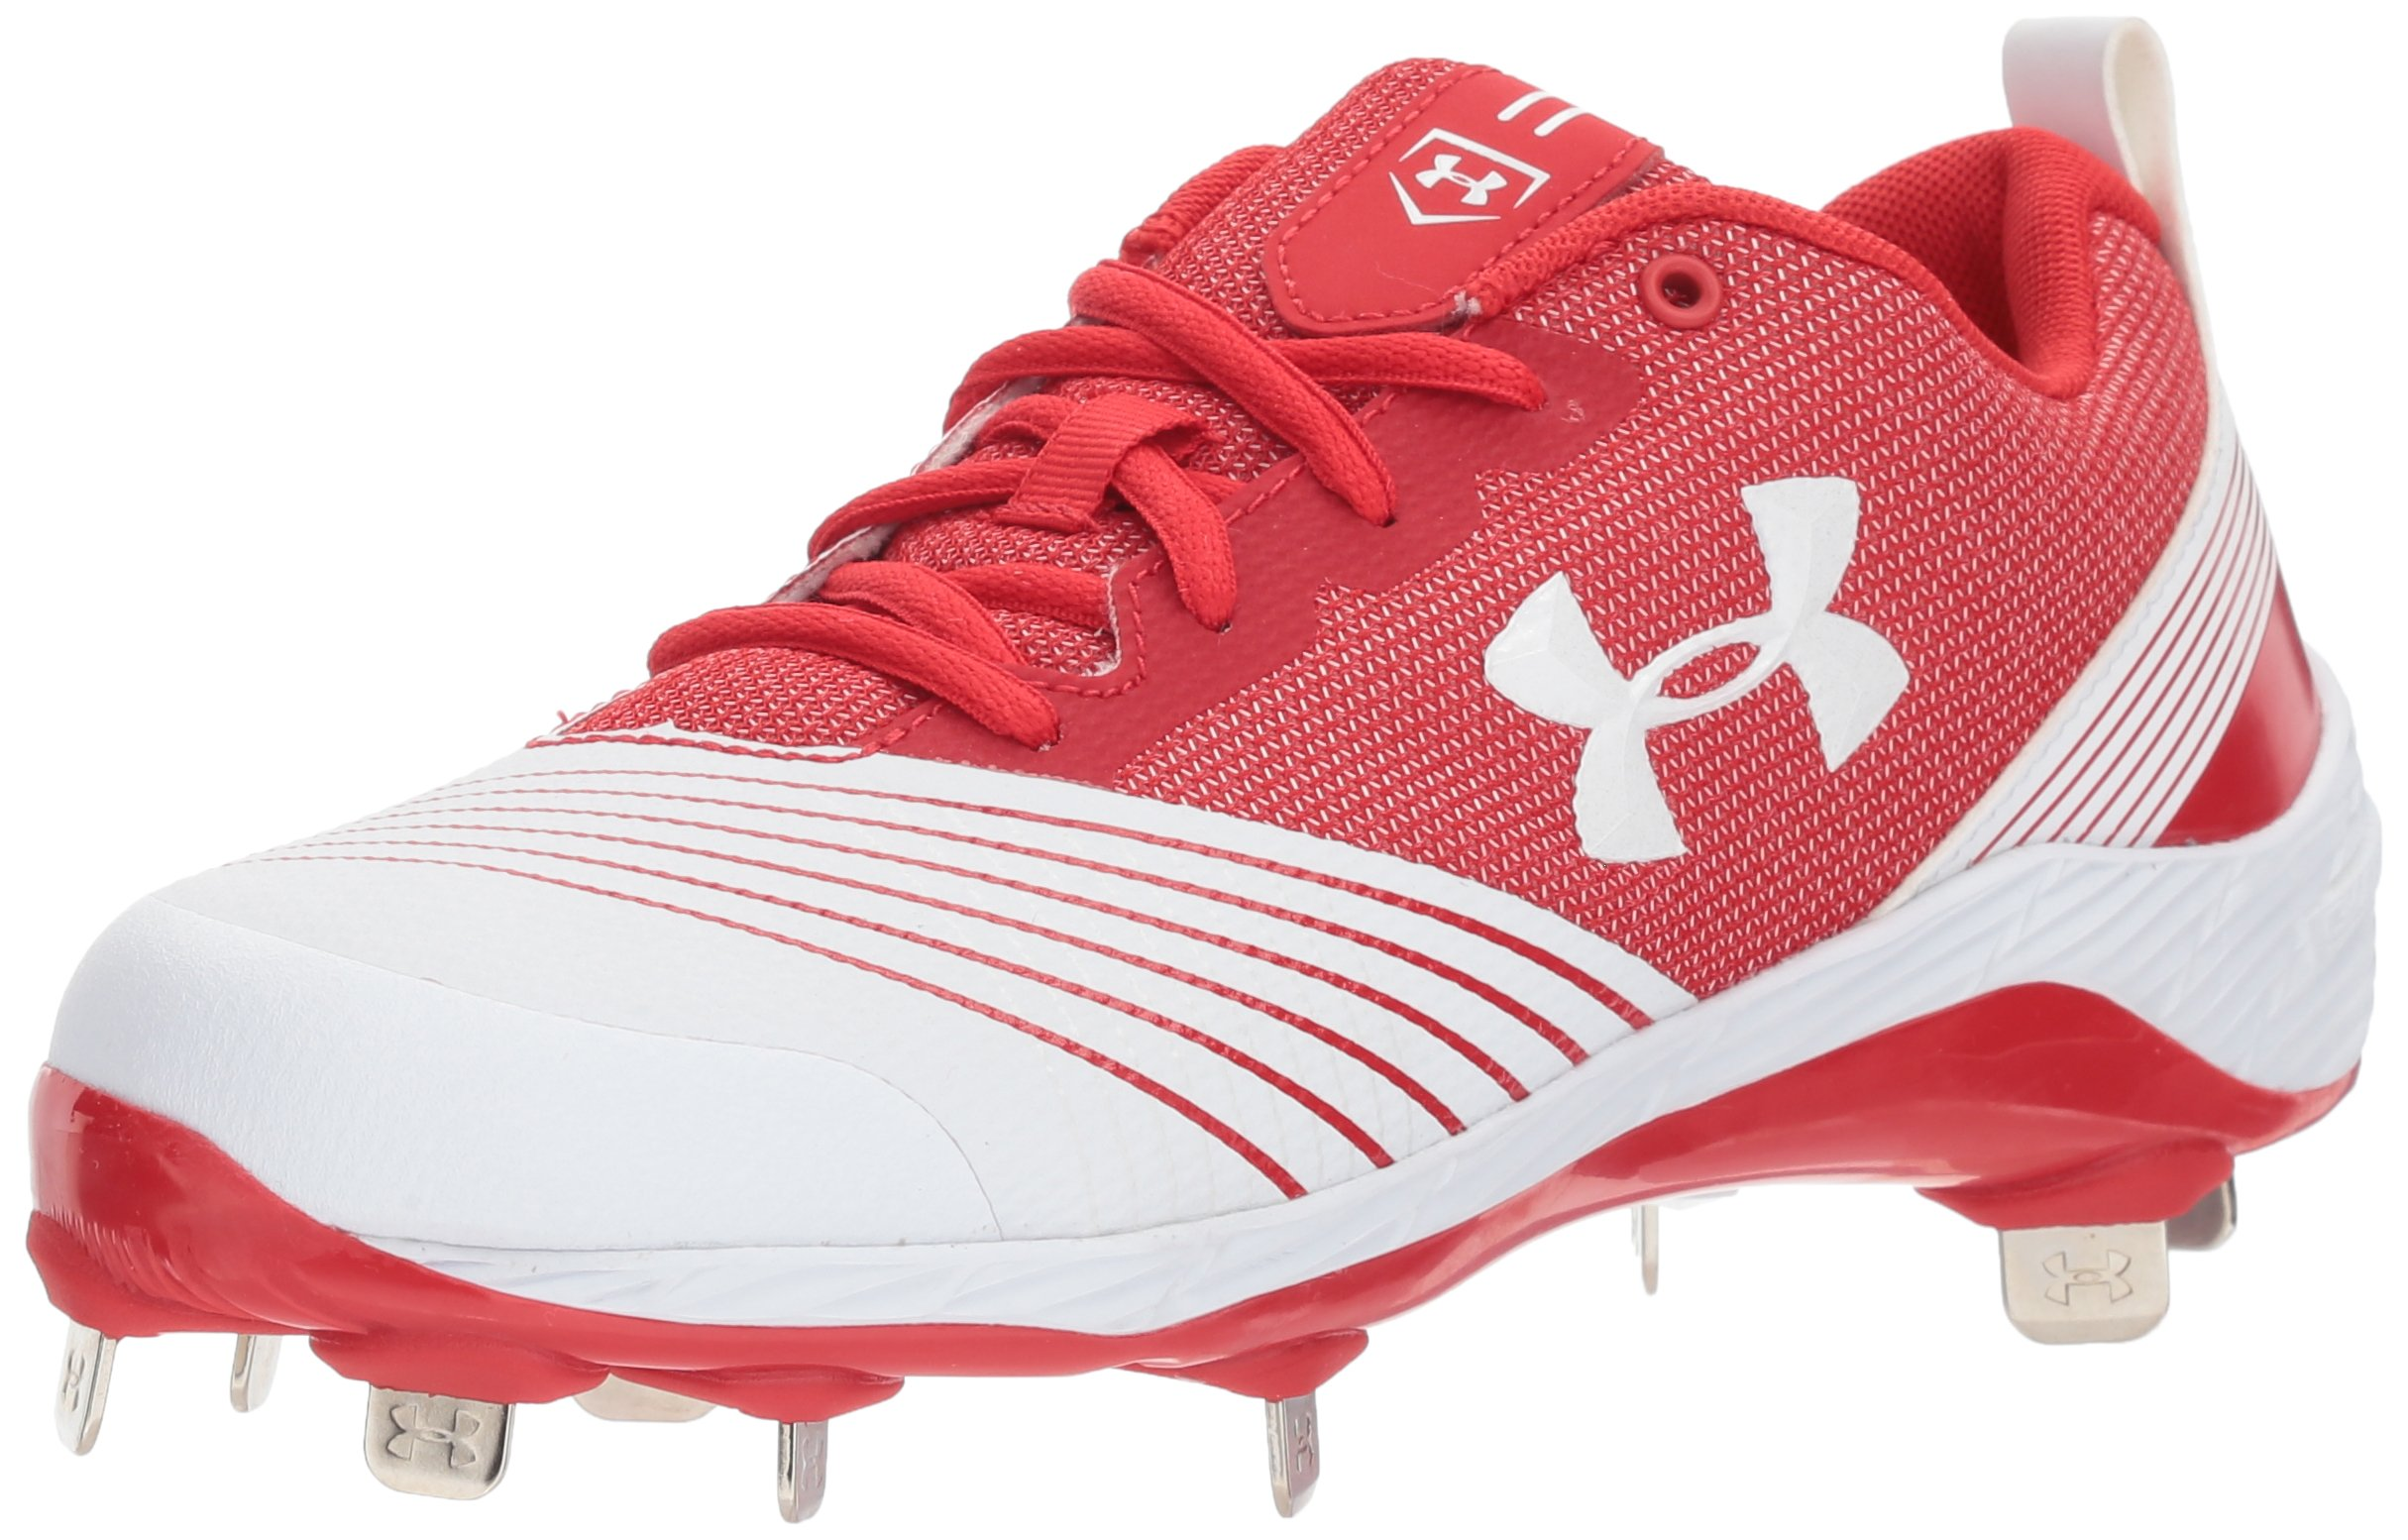 Under Armour Women's Glyde ST Softball Shoe, White (161)/Red, 11 by Under Armour